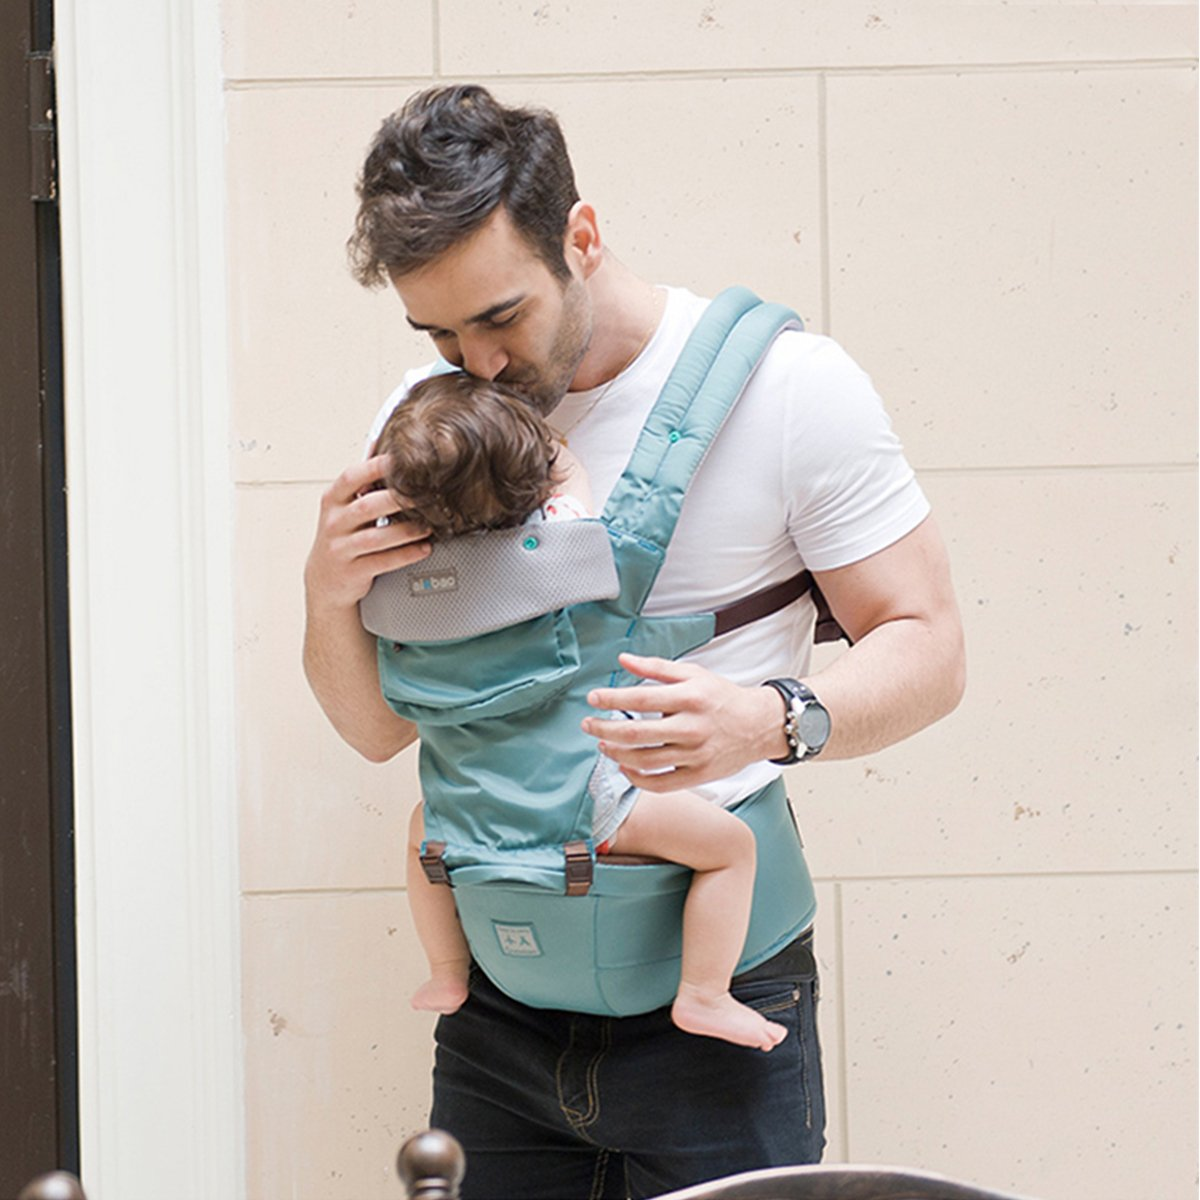 Yellow SONARIN Four Seasons Ergonomic Hipseat Baby Carrier,Oxford Cloth 100/% Infinity Guarantee,Ideal Gift Breathable mesh Backing,Free Size,Adapted to Your Childs Growing 6 Carrying Positions